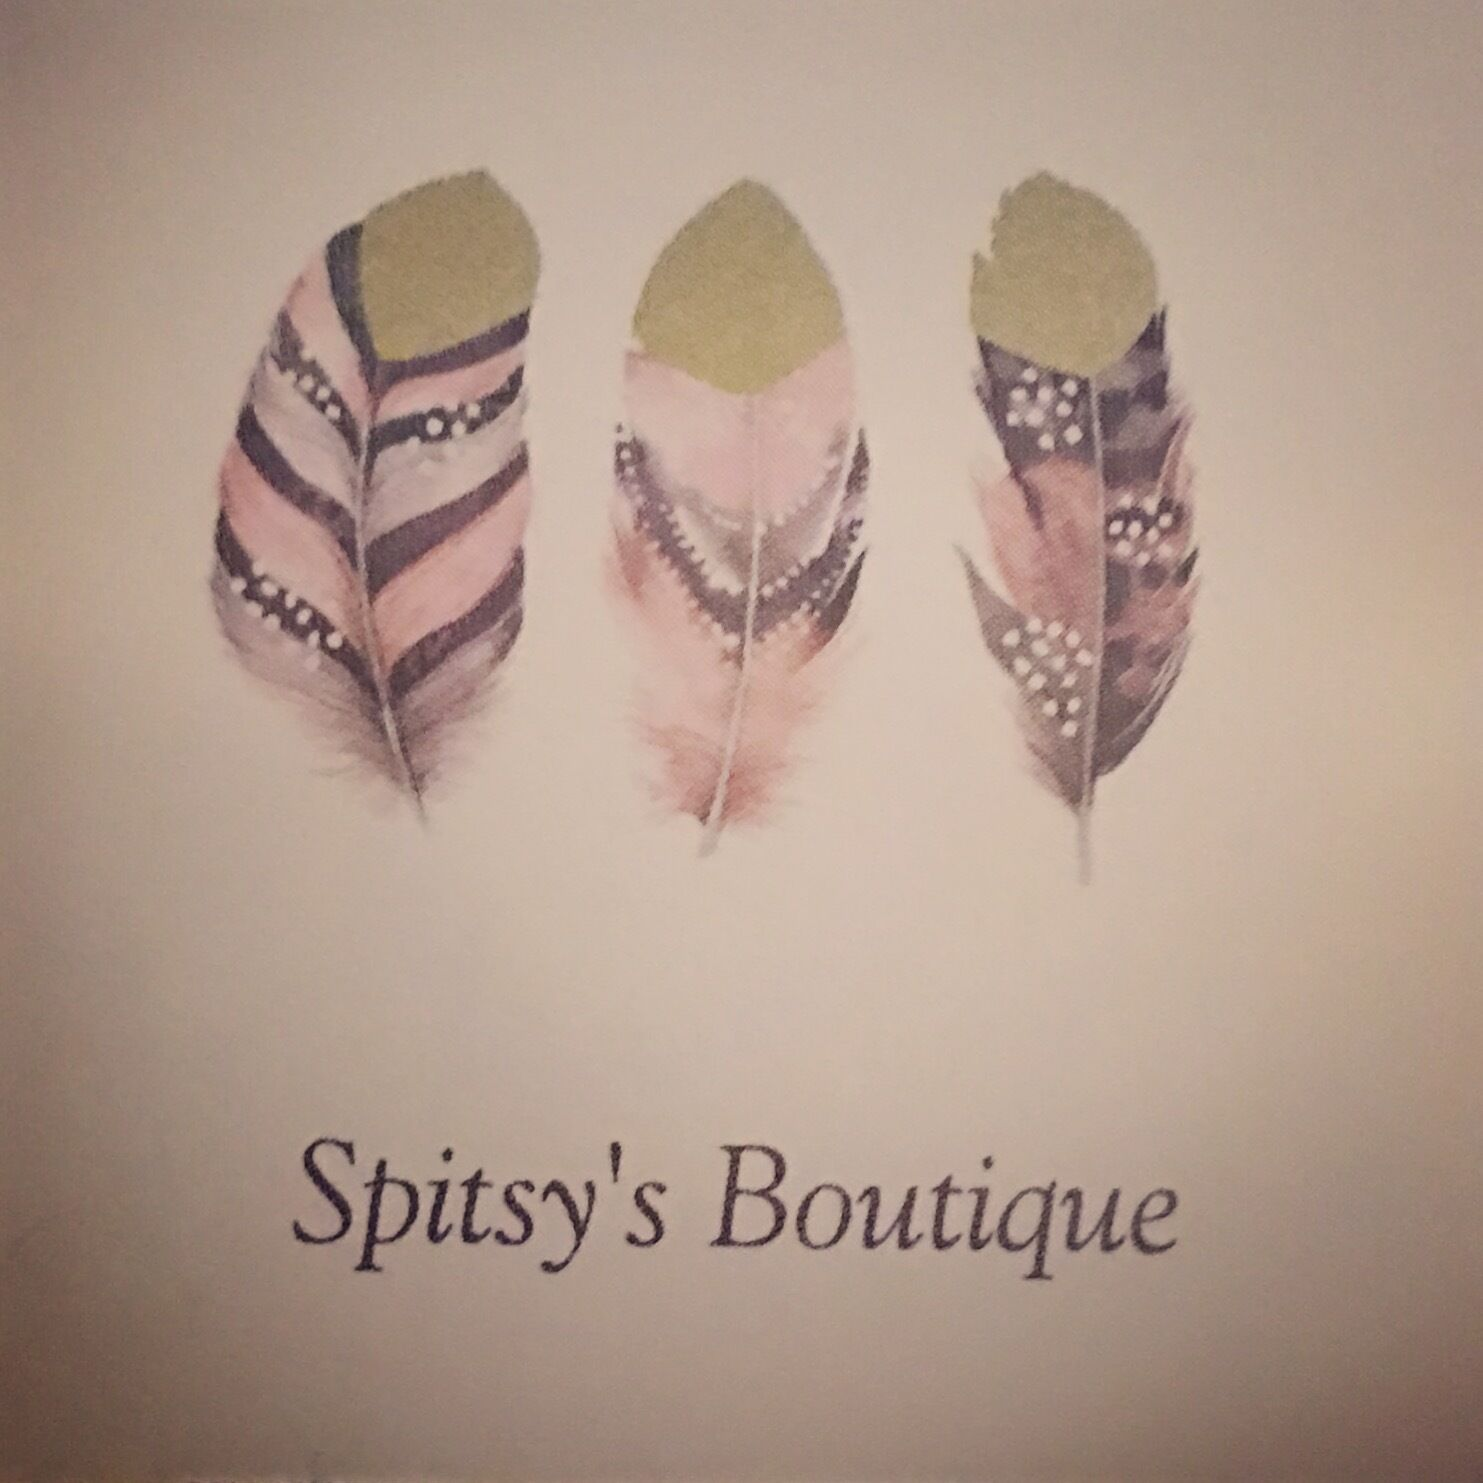 Spitsy's Boutique